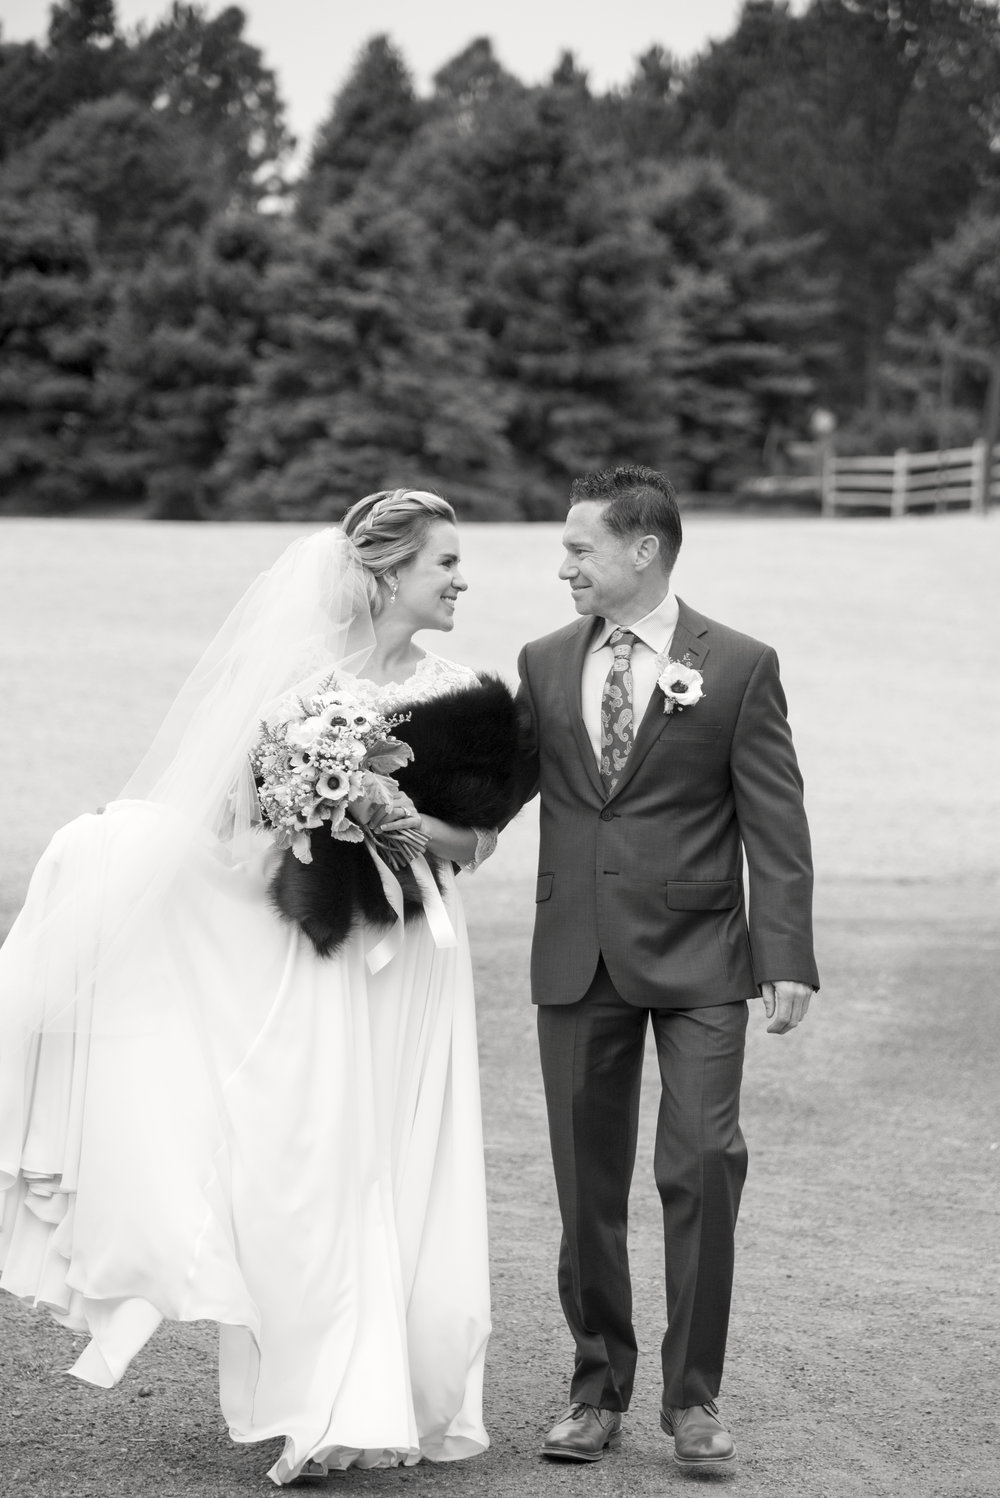 Black and white bride and groom | Mary and Brad's outdoor wedding photography at Hudson Gardens | Colorado Springs, Colorado | Farm Wedding Photographer | Apollo Fields Photojournalism